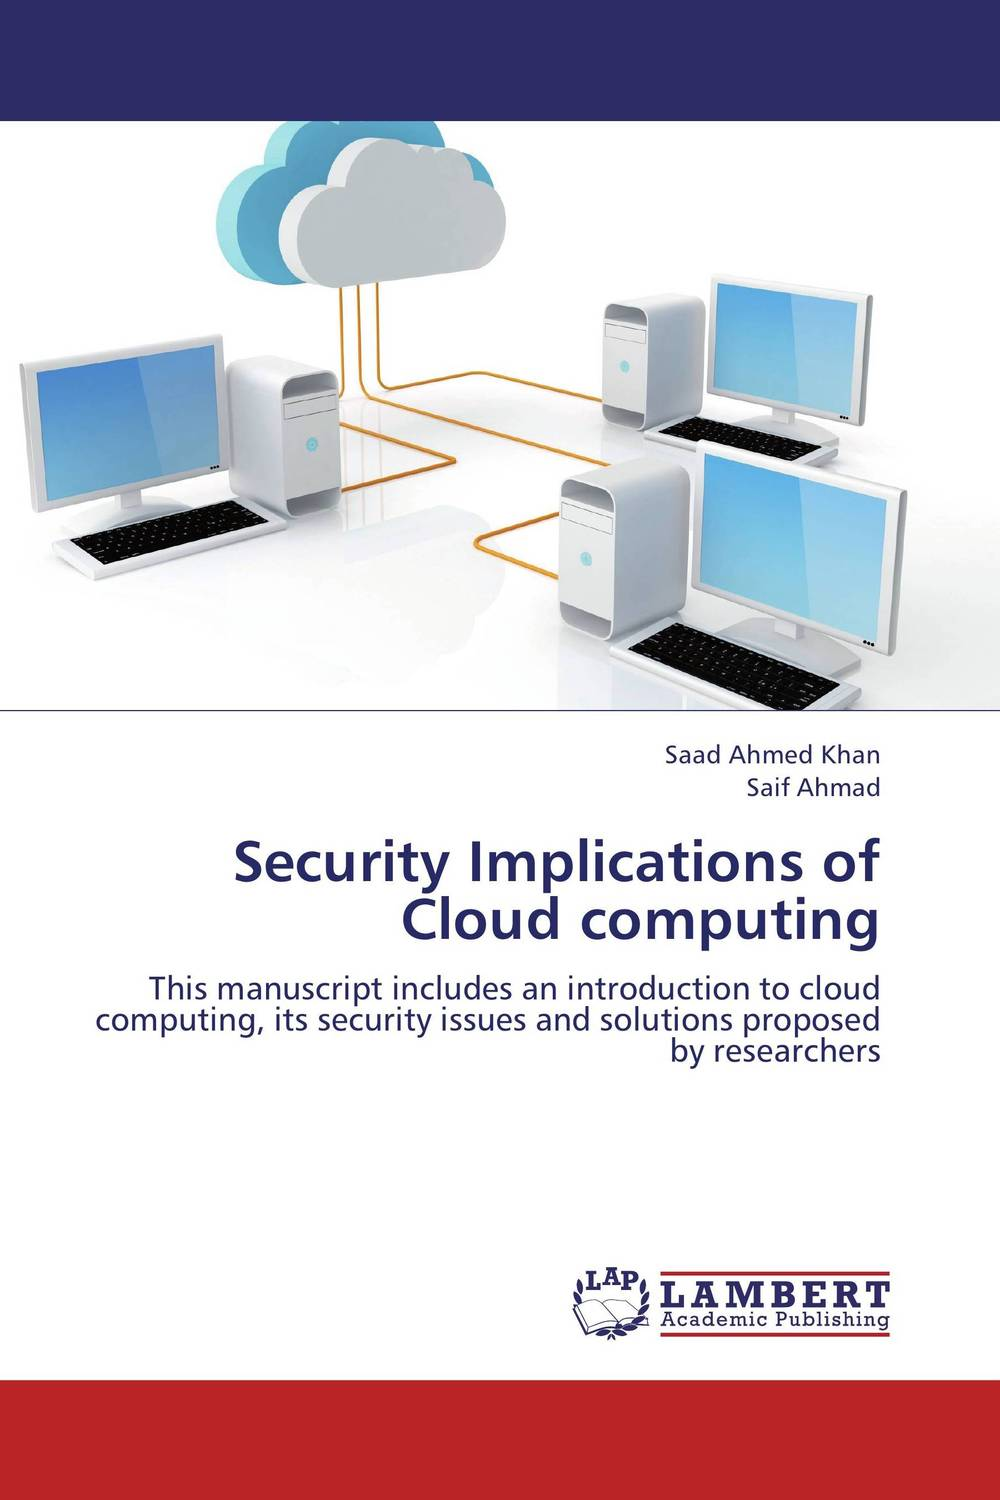 Security Implications of Cloud computing belousov a security features of banknotes and other documents methods of authentication manual денежные билеты бланки ценных бумаг и документов